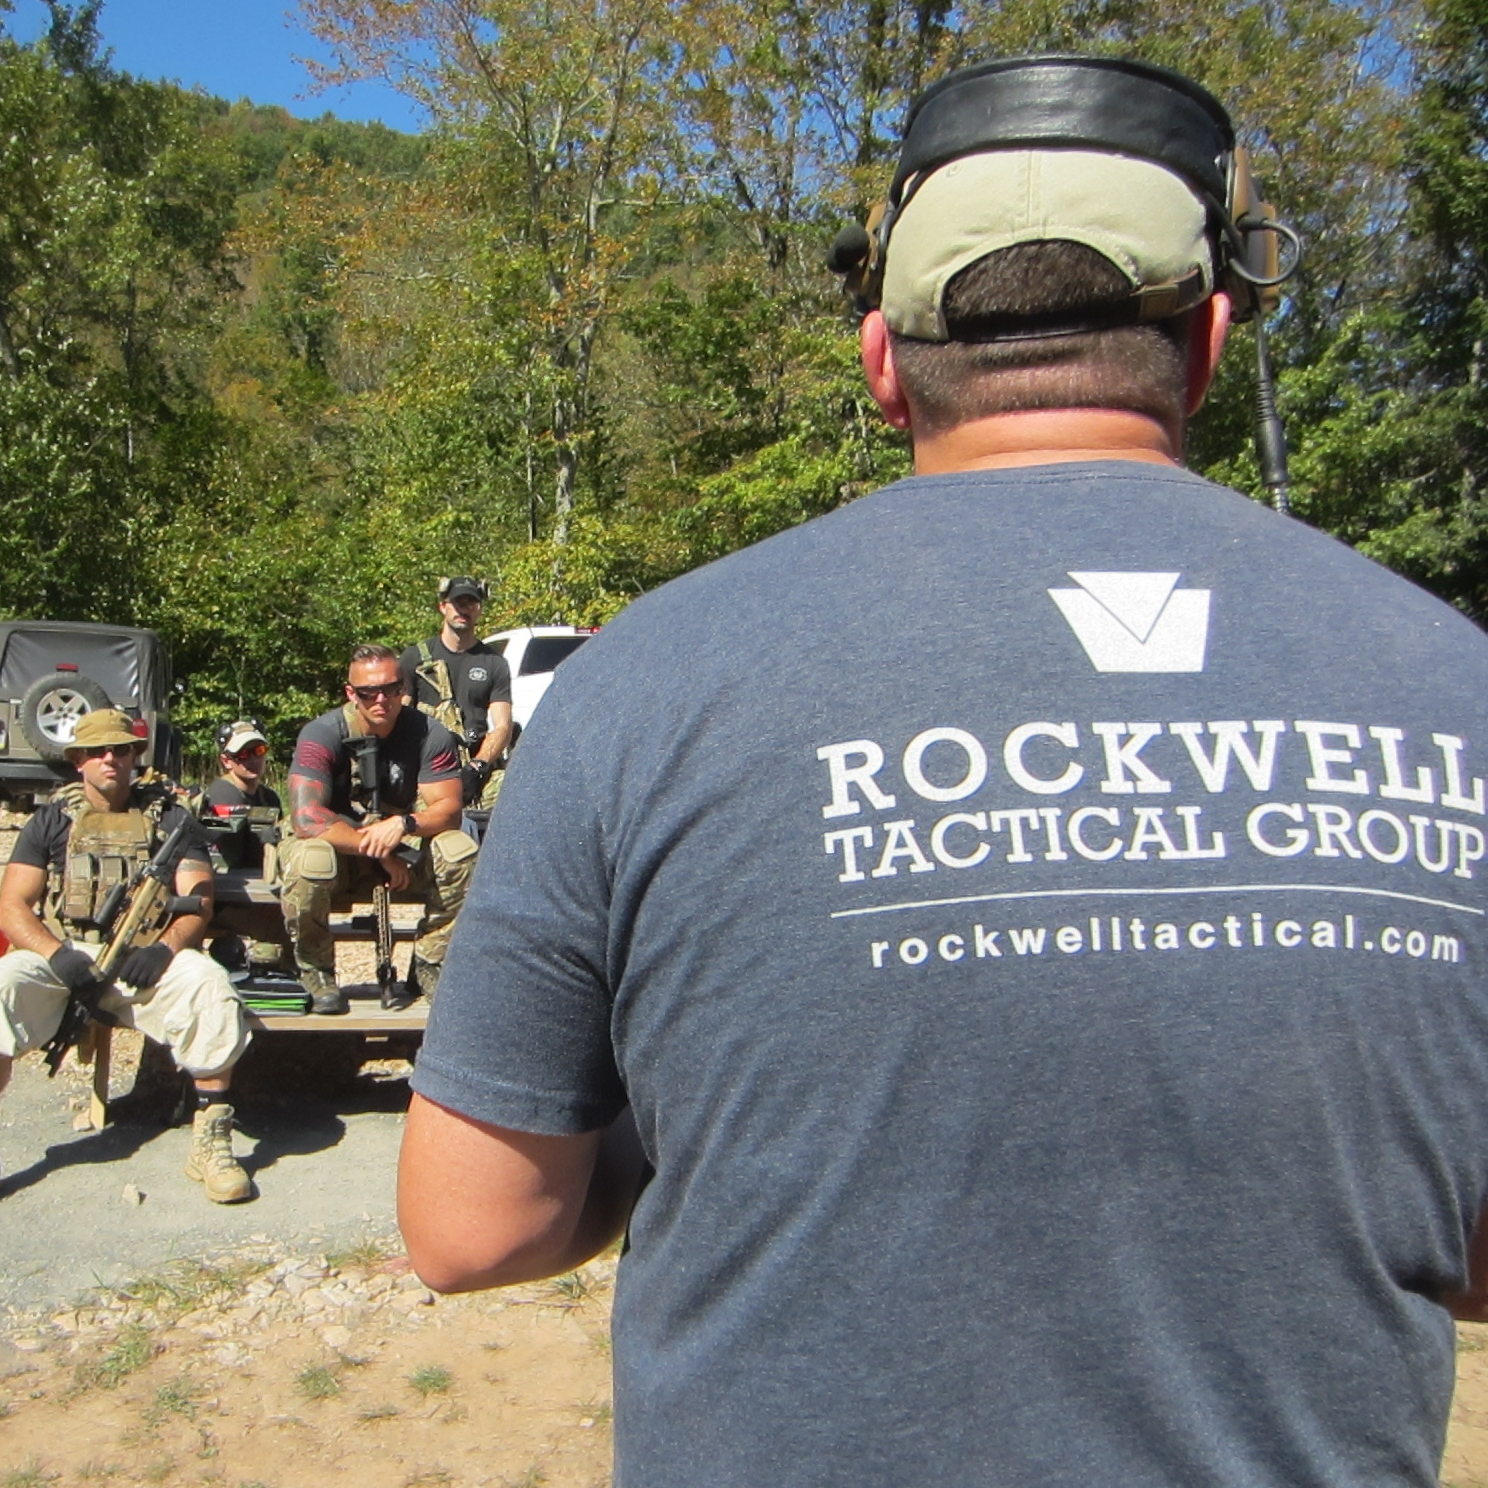 """We are Rockwell Tactical. - We are a training company based in Central Pennsylvania, teaching all levels of weapons training. We have some of the most qualified, knowledgeable and well-respected trainers in the country who have used their skills throughout their military and law enforcement careers. Regardless of the instructor or the class, though, the foundation of everything we teach is the """"Rockwell mindset."""" In any situation, the gun is simply the tool. Your mind is the real weapon. And, having the proper mindset can be the difference between failure and success.Our goal is to encourage everyone to arm themselves with the knowledge and experience to protect themselves and their loves ones. Our classes range from beginner – students who have never handled a firearm – to experienced – those of us who have been around the block but want to keep their skills sharp, and perhaps even learn something new."""